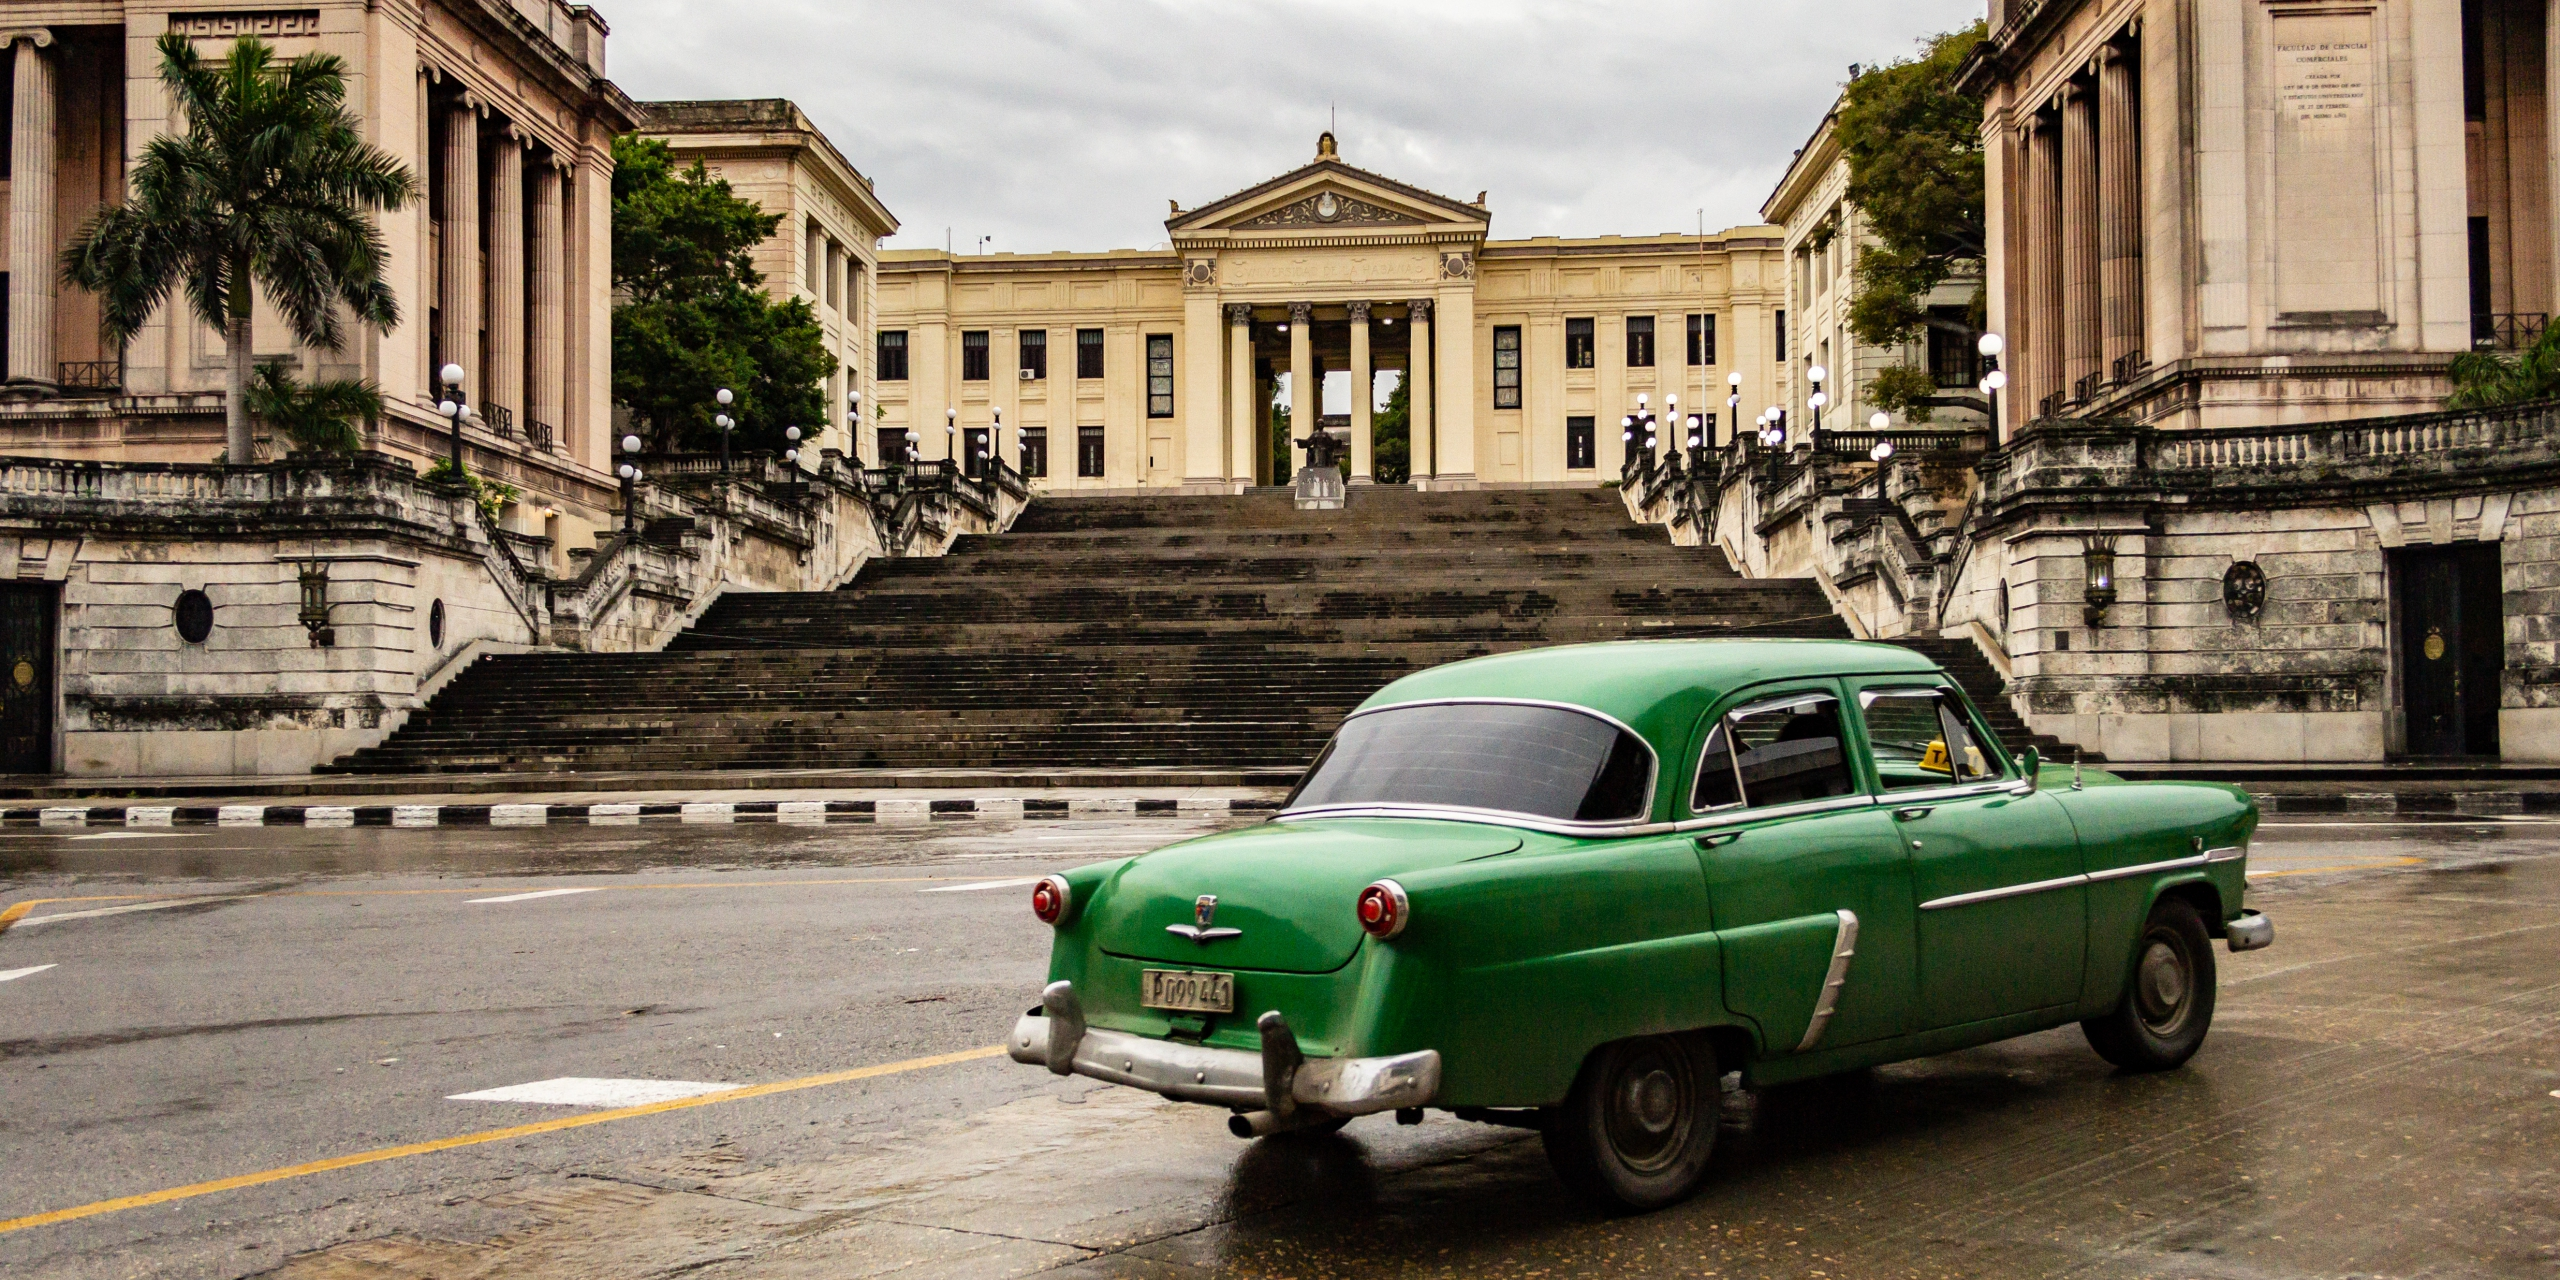 Looking towards the steps of the Universidad de la Habana during a break in the rain as a car passes by.